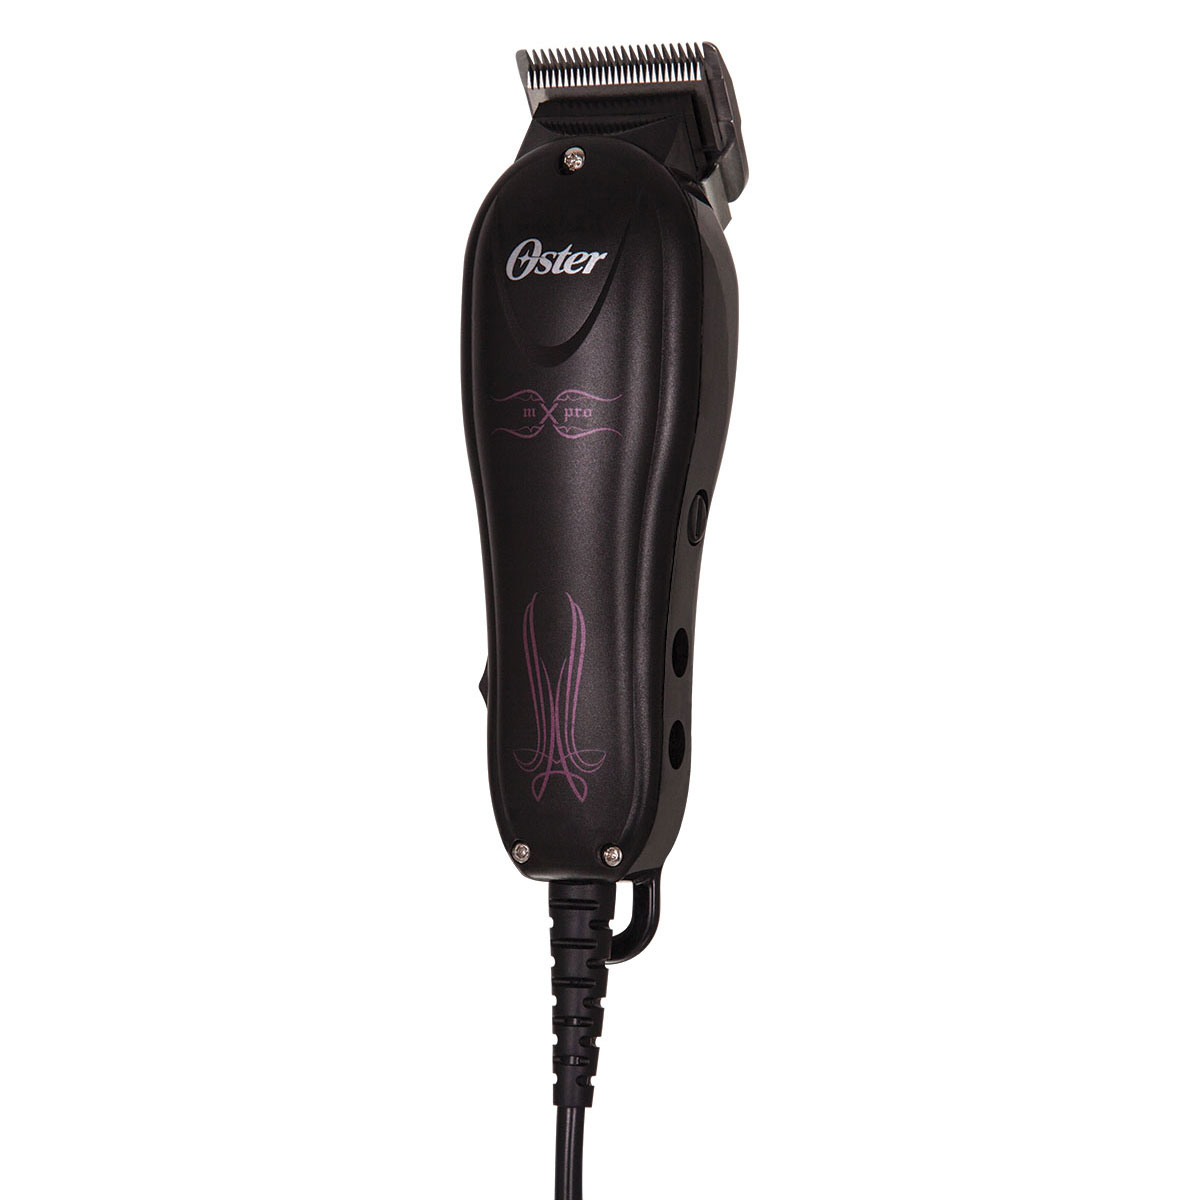 oster mx pro adjustable blade hair clippers and teqie beard trimmer 076370 010 ebay. Black Bedroom Furniture Sets. Home Design Ideas